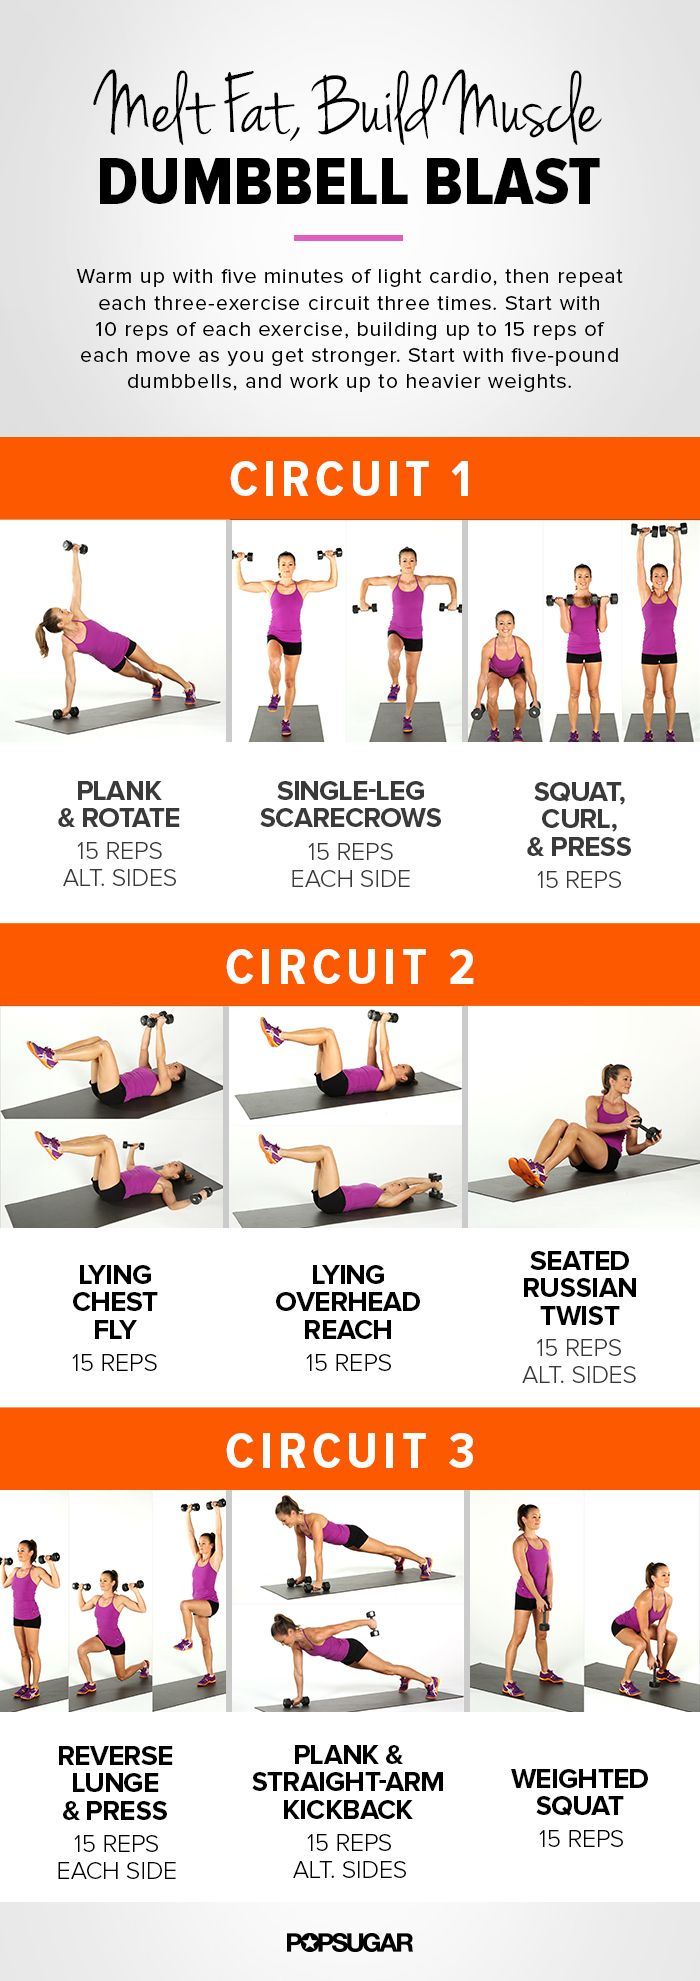 Printable workout with weight to keep your New Year's goals rocking!